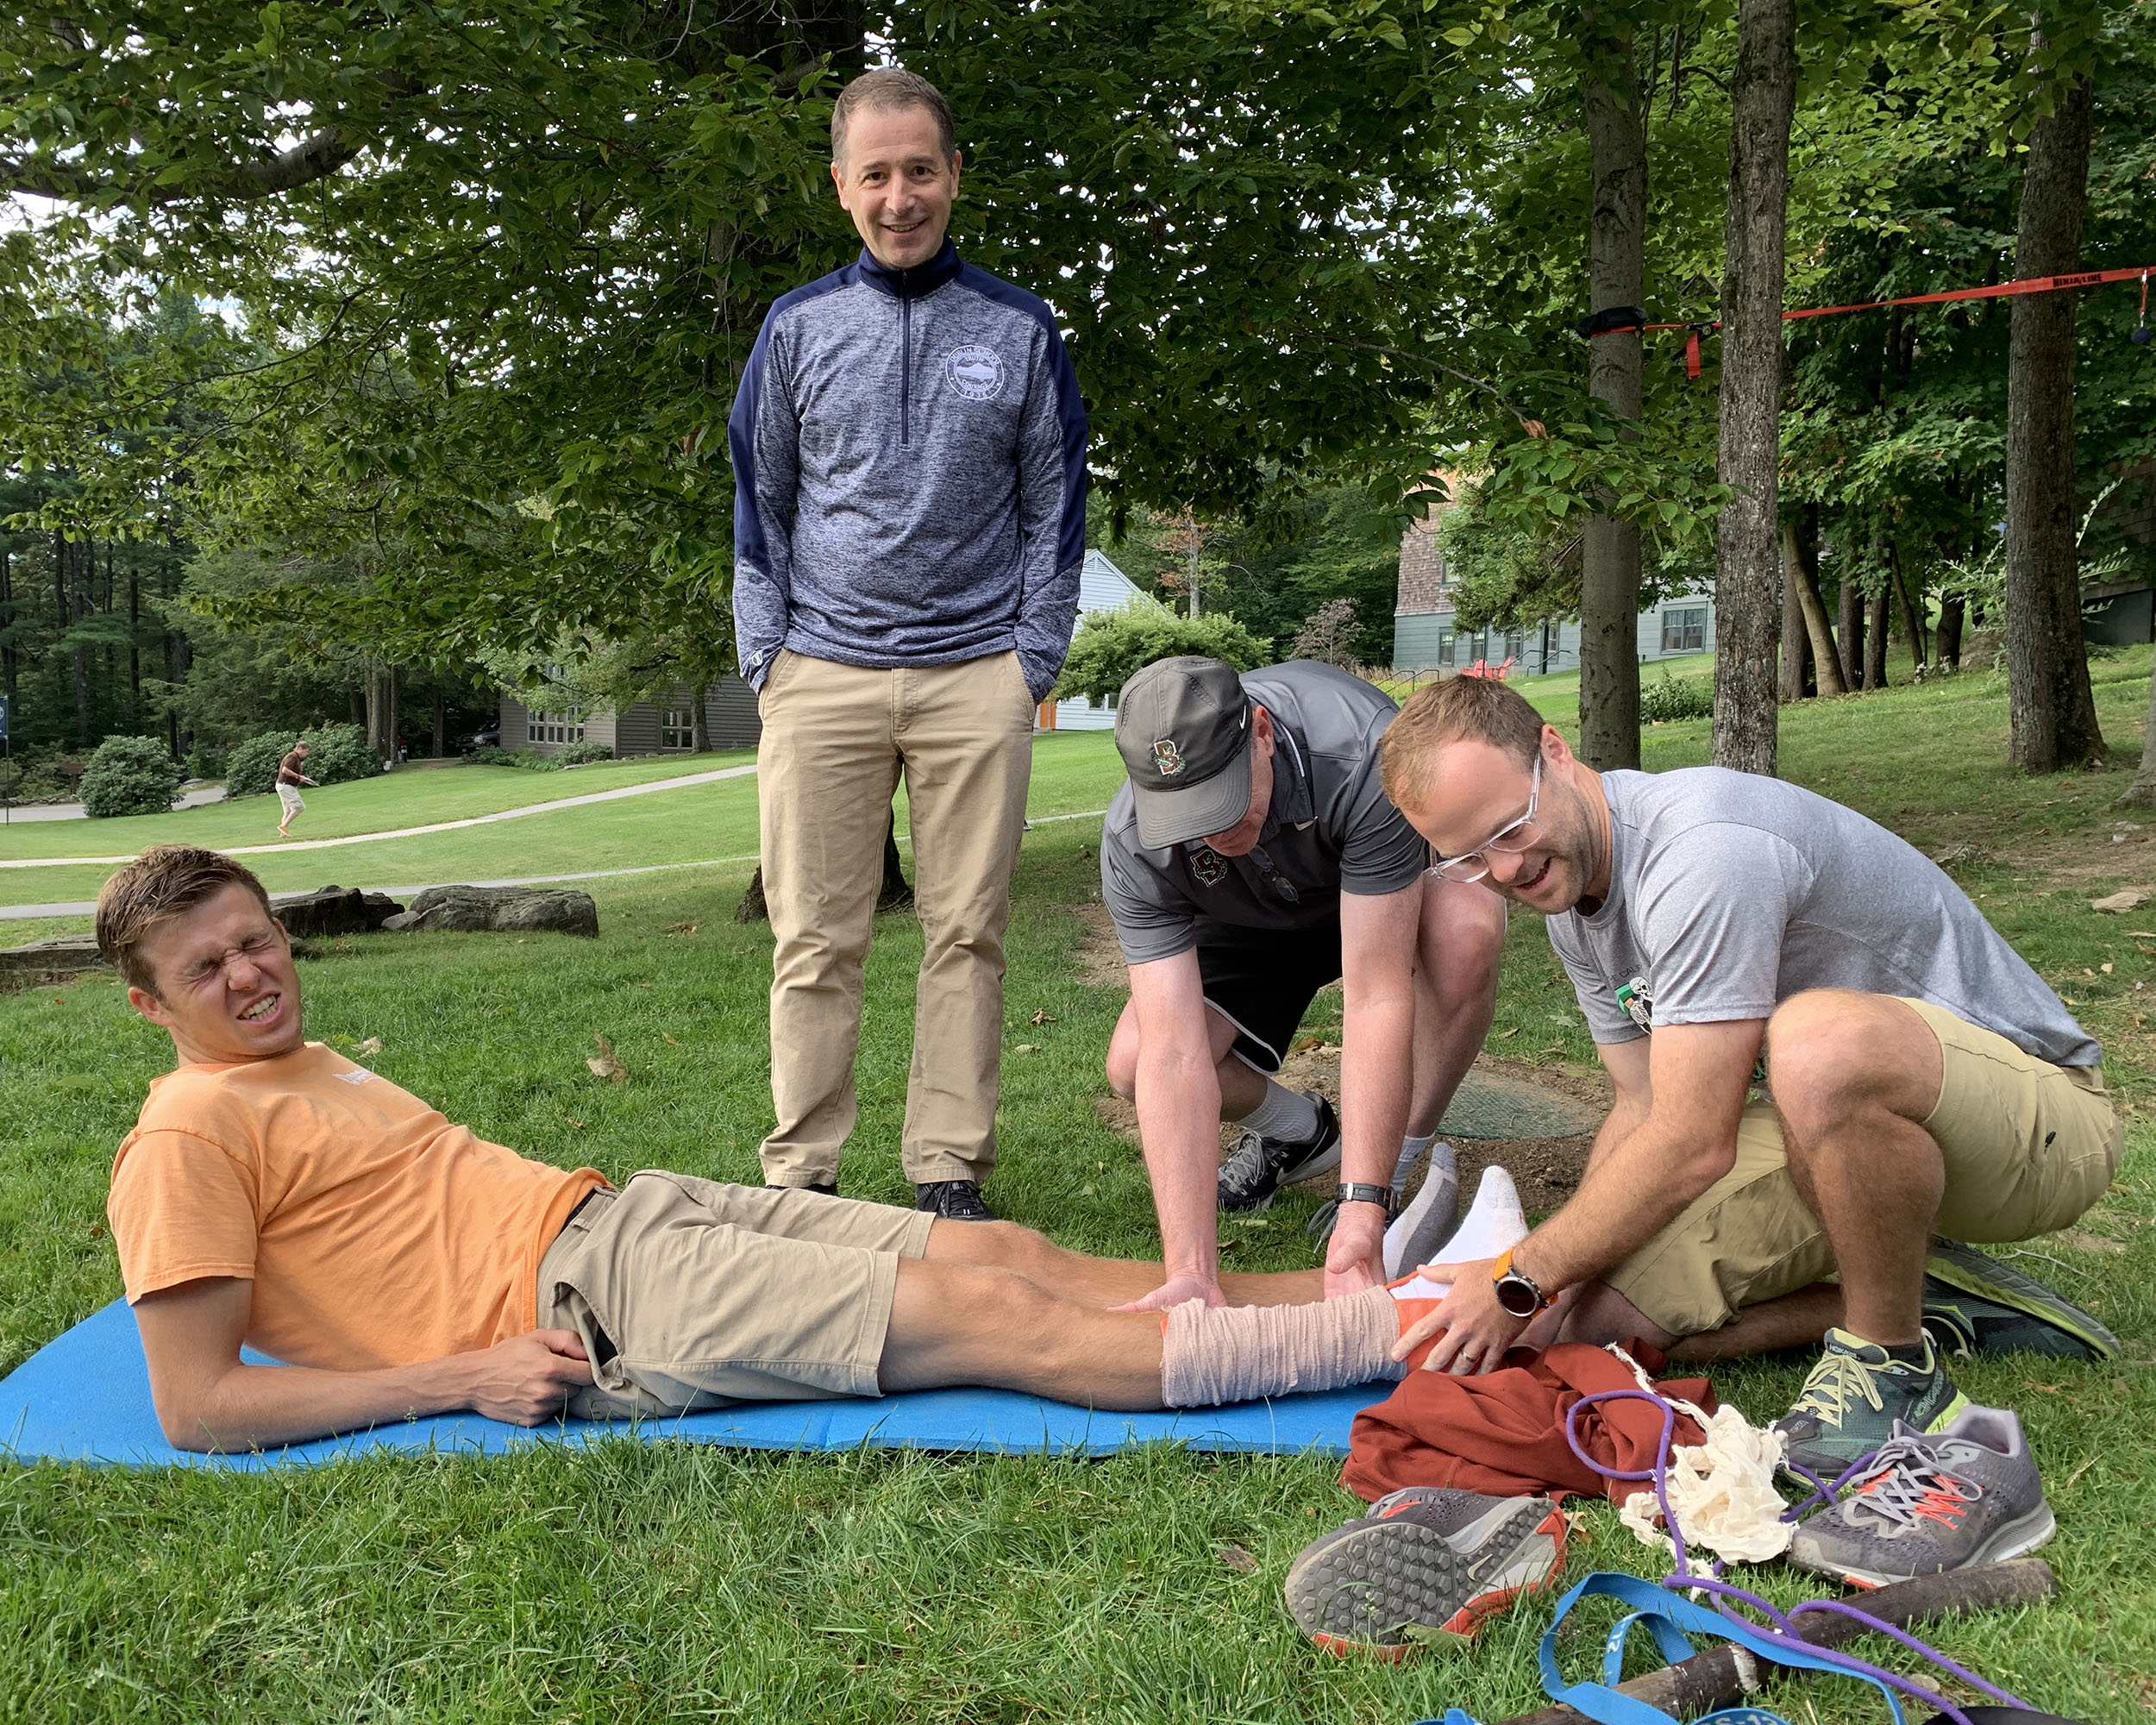 It's all in a days work. Learning how to splint an injured ankle during wilderness first aid training.